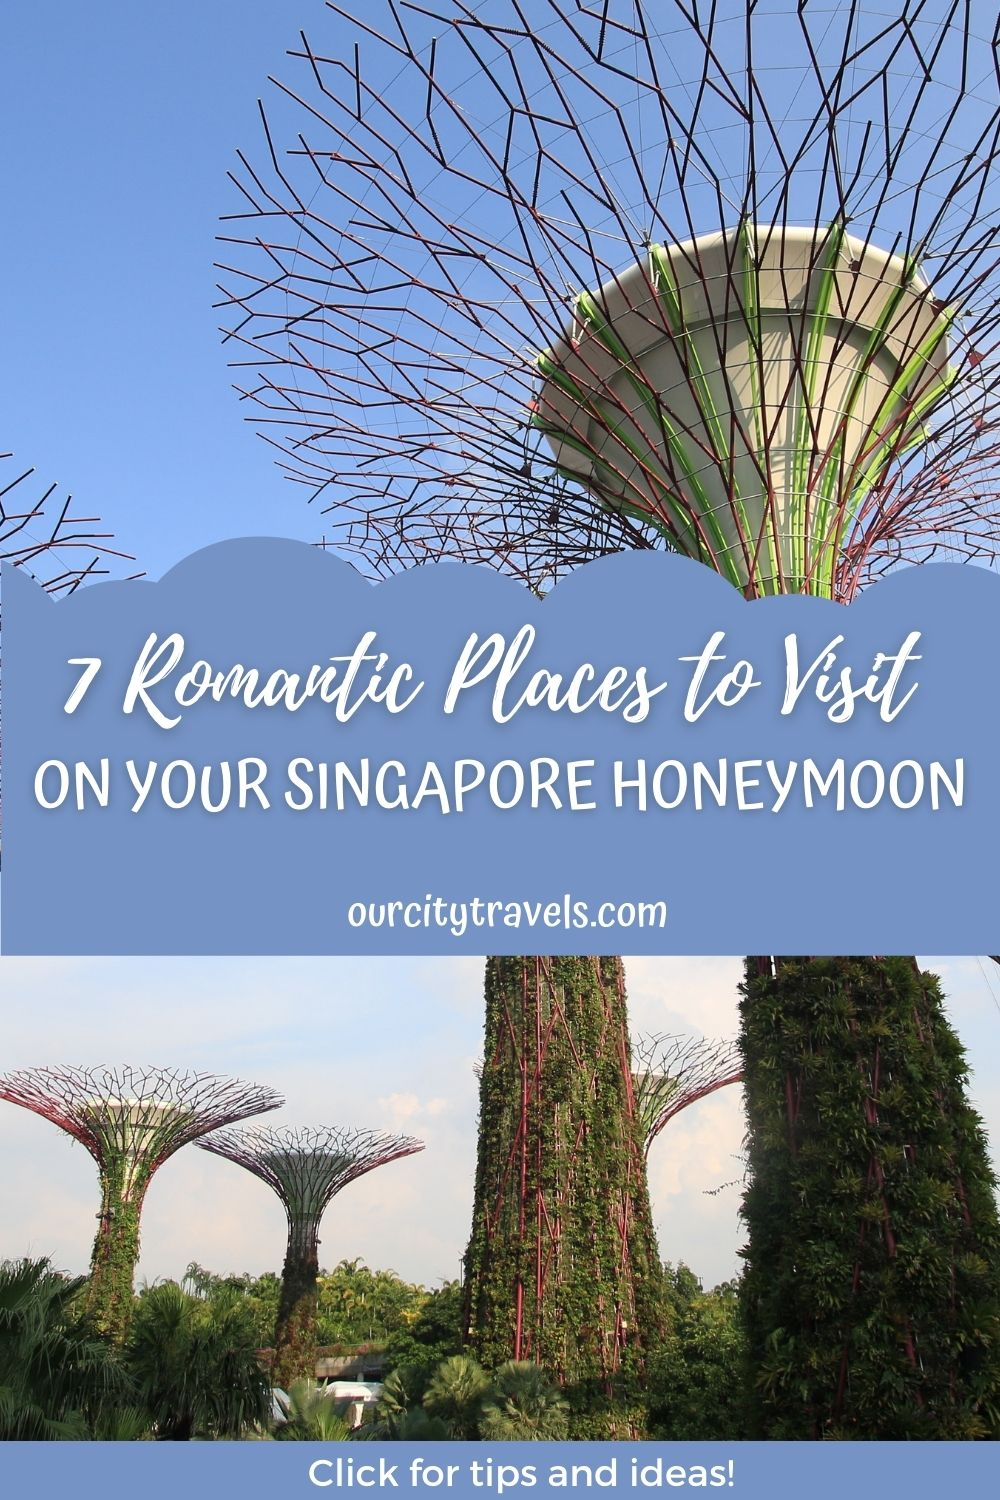 7 Romantic Places to Visit on your Singapore Honeymoon